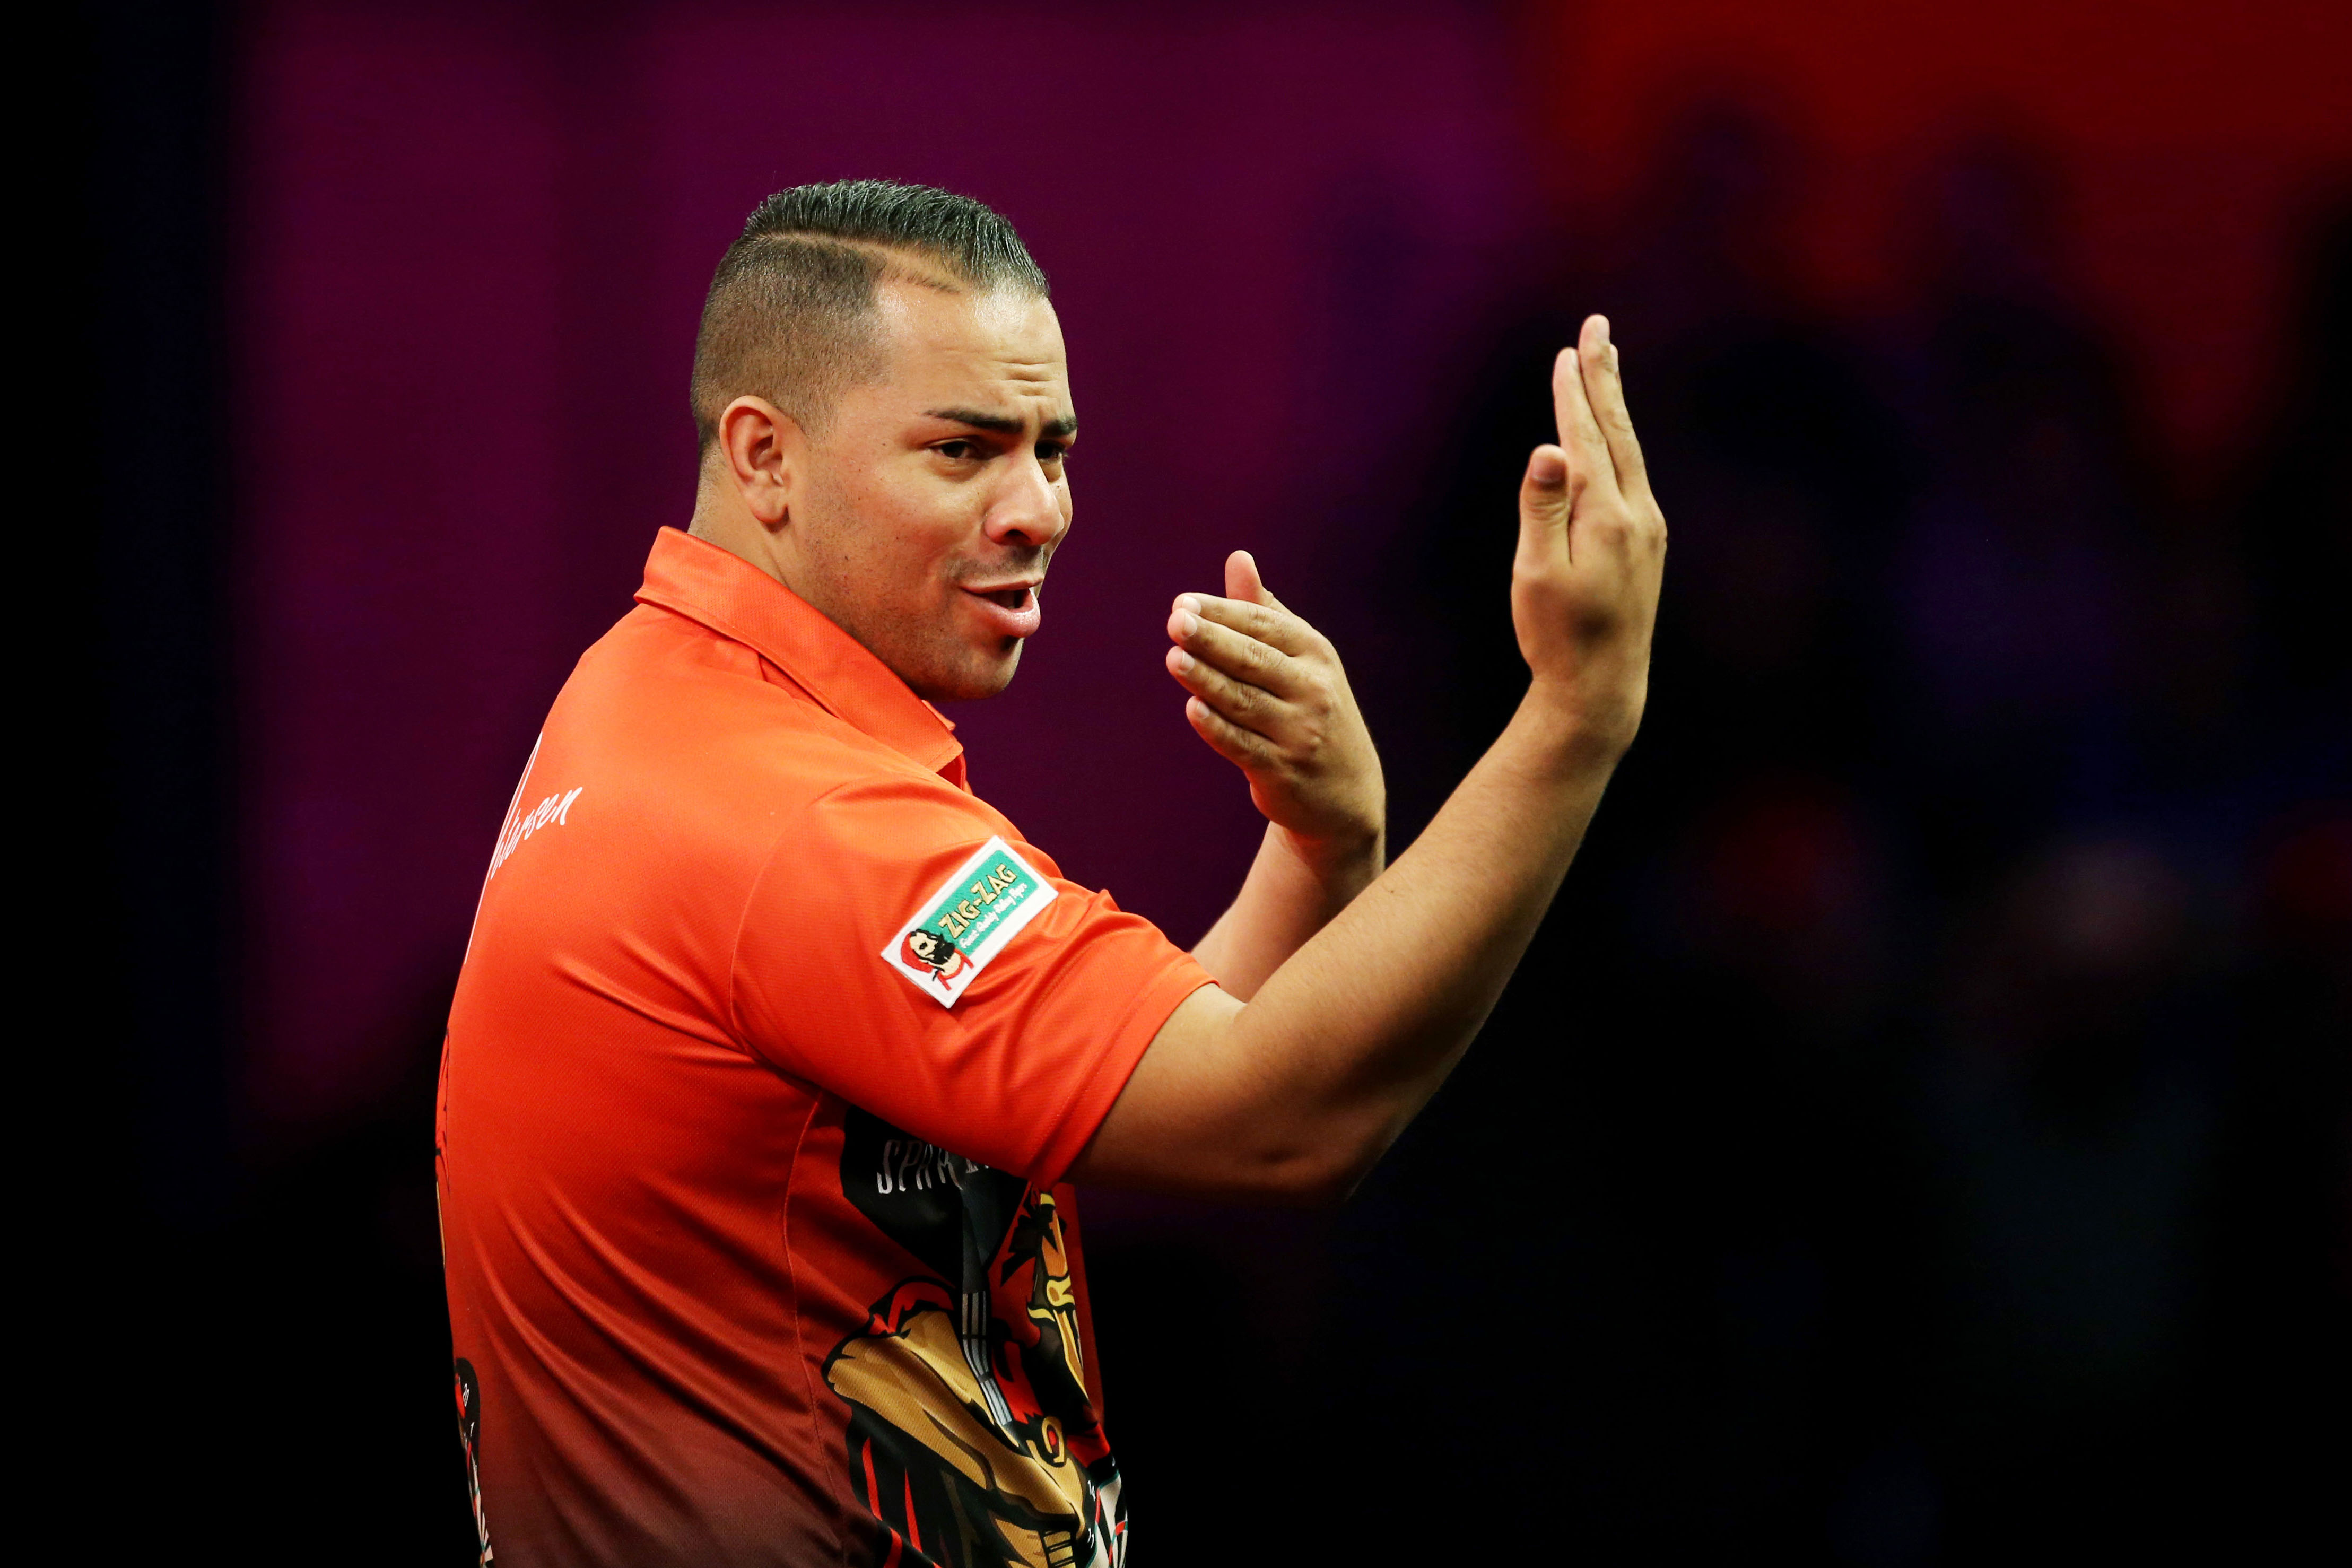 27 December 2013: Devon Petersen during his walk-on for the second round of the 2014 Ladbrokes World Darts Championship at Alexandra Palace in London, England. (Photograph by Action Images/Steven Paston)